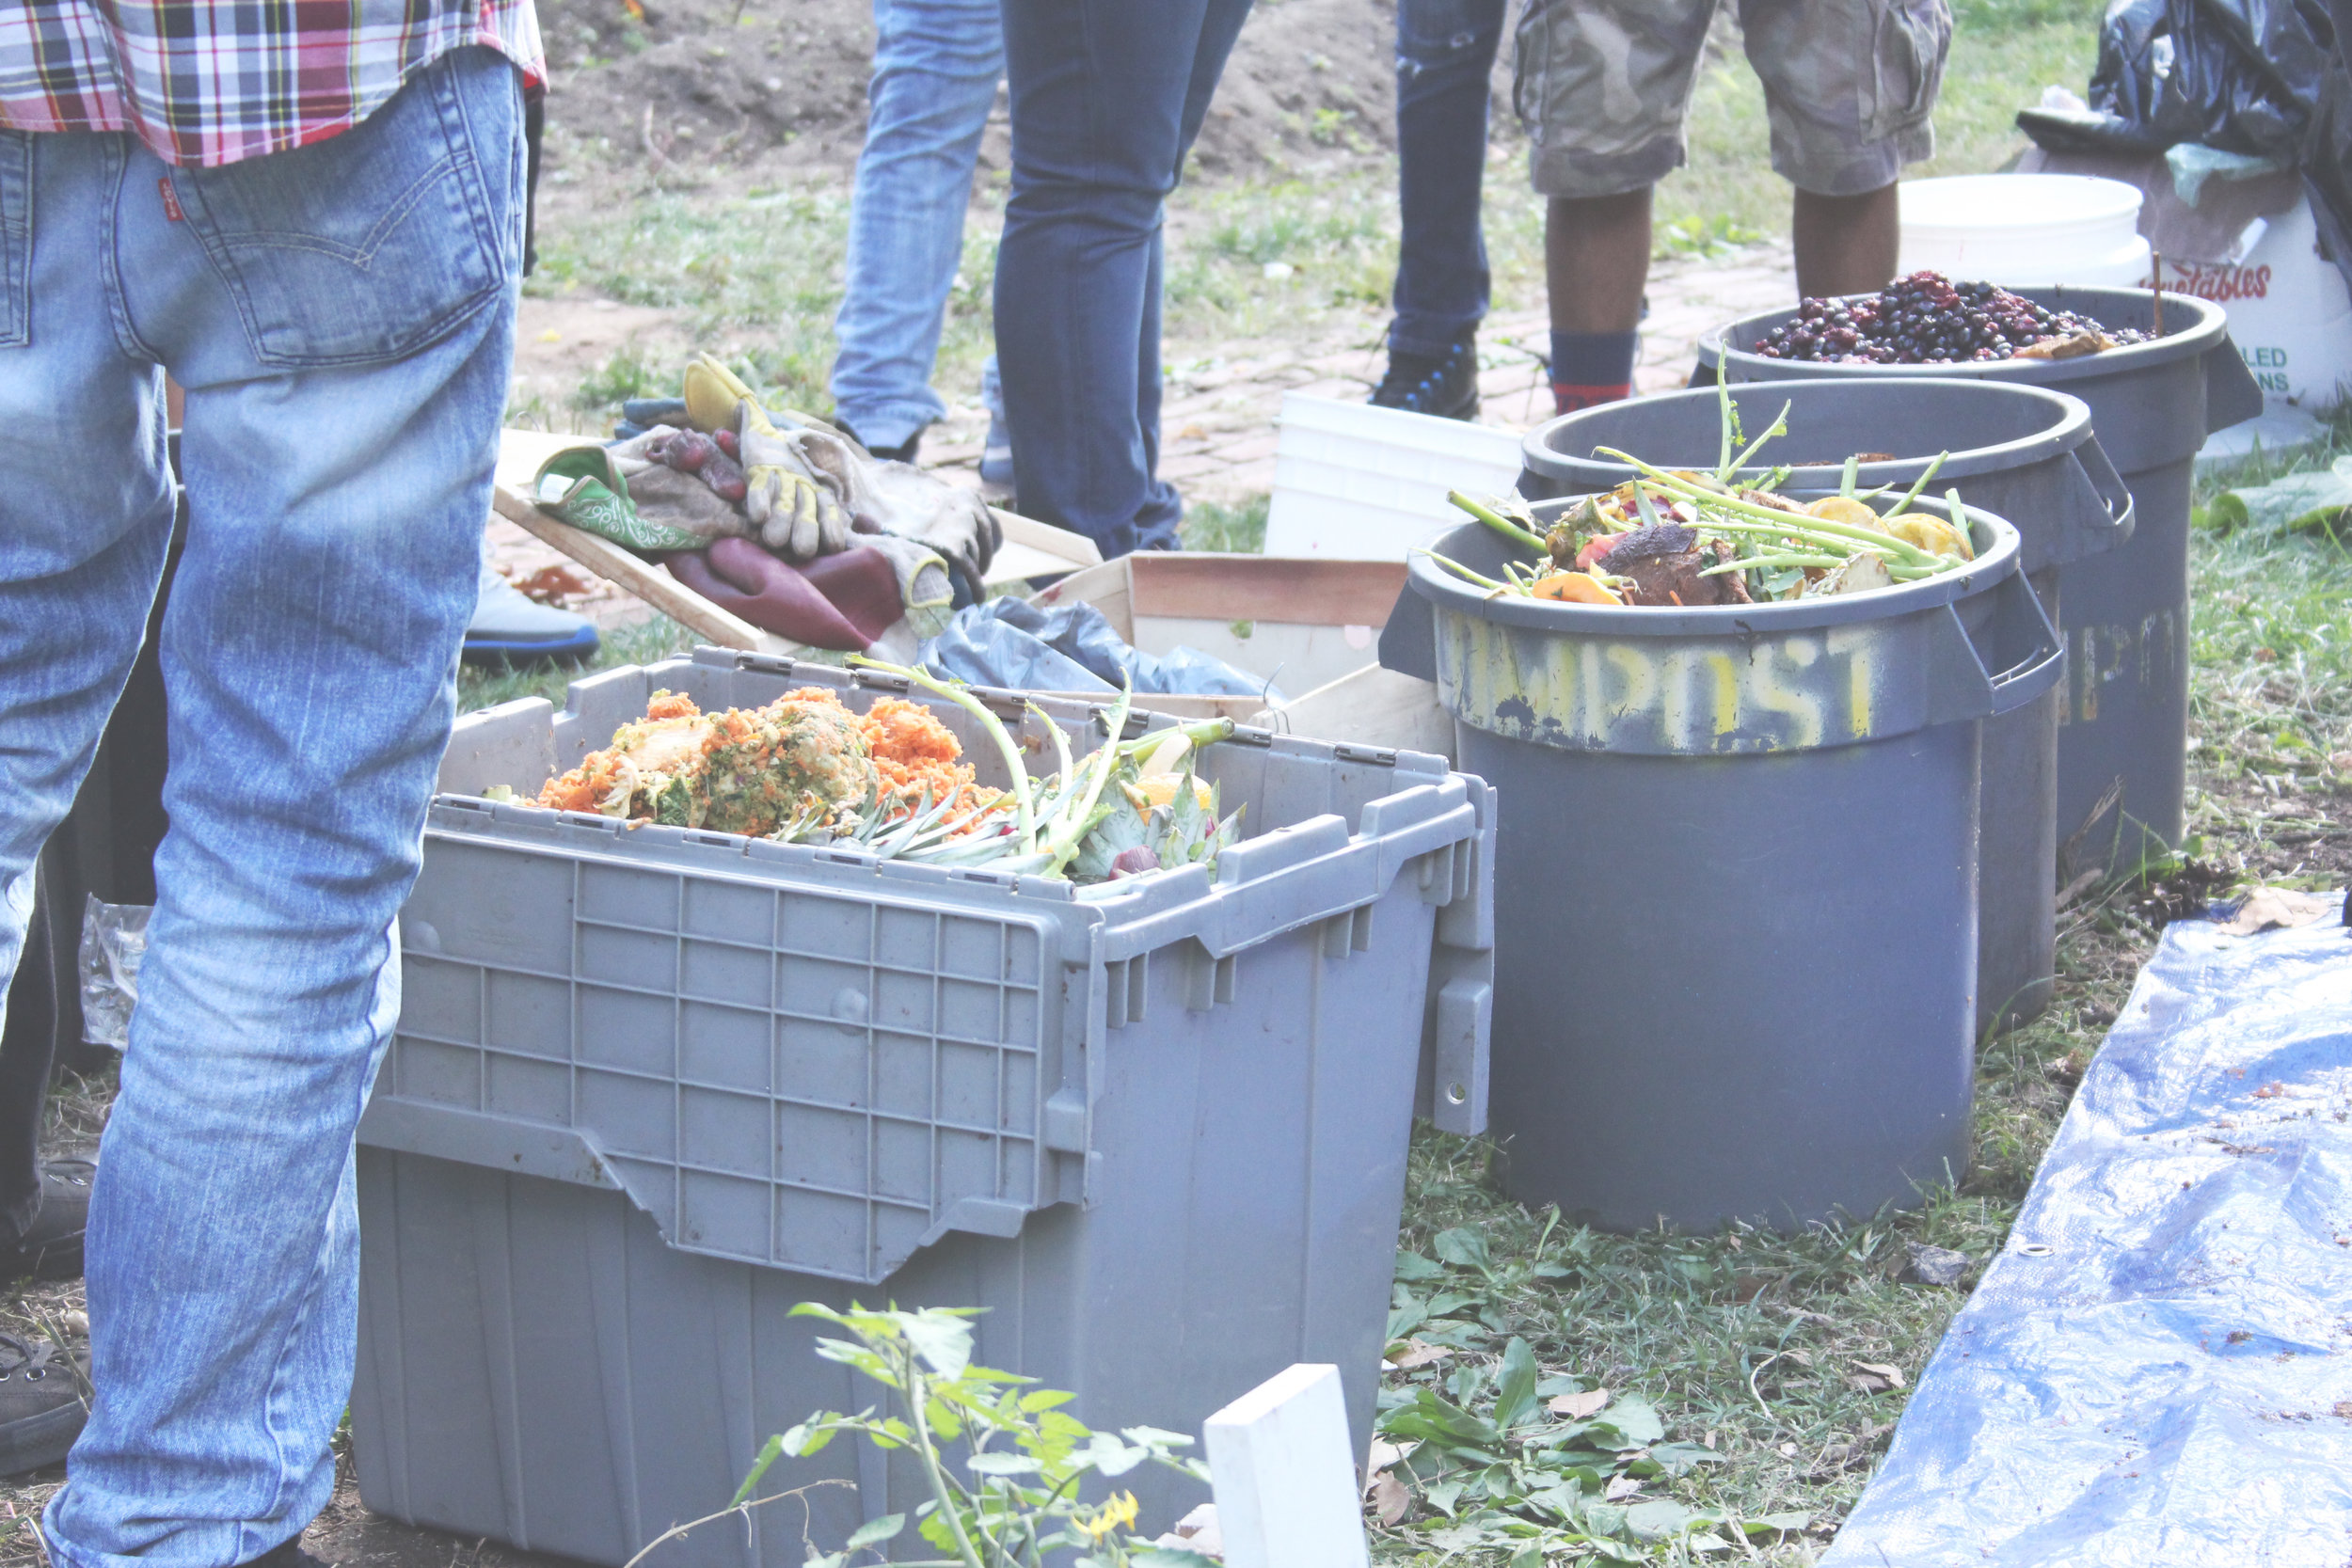 Some of the compost scraps collected near community gardens and farmers markets. Photo courtesy of Laura Rosenshine.